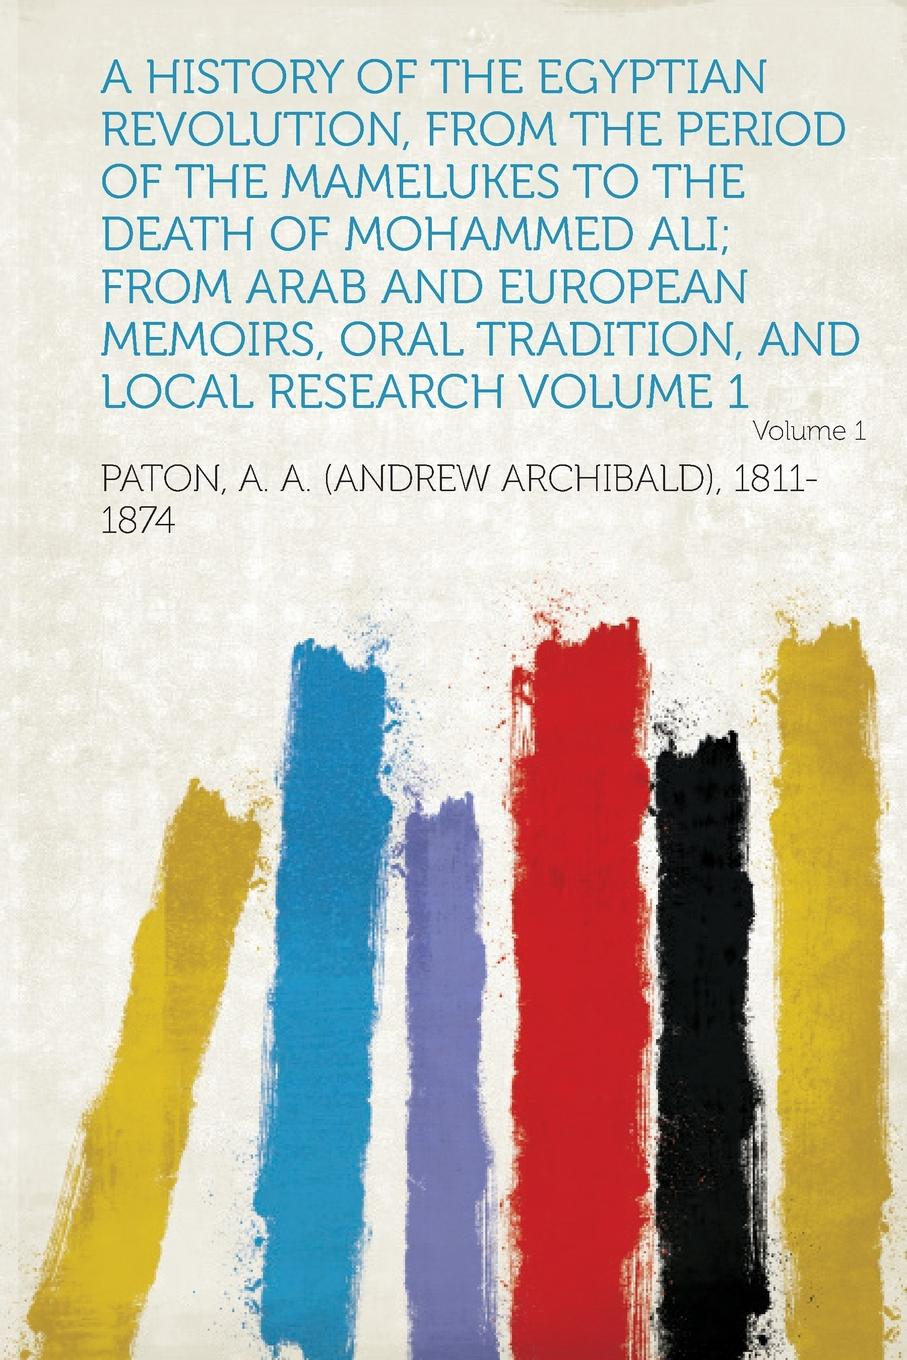 A History of the Egyptian Revolution, from Period Mamelukes to Death Mohammed Ali; From Arab and European Memoirs, Oral Tradition,